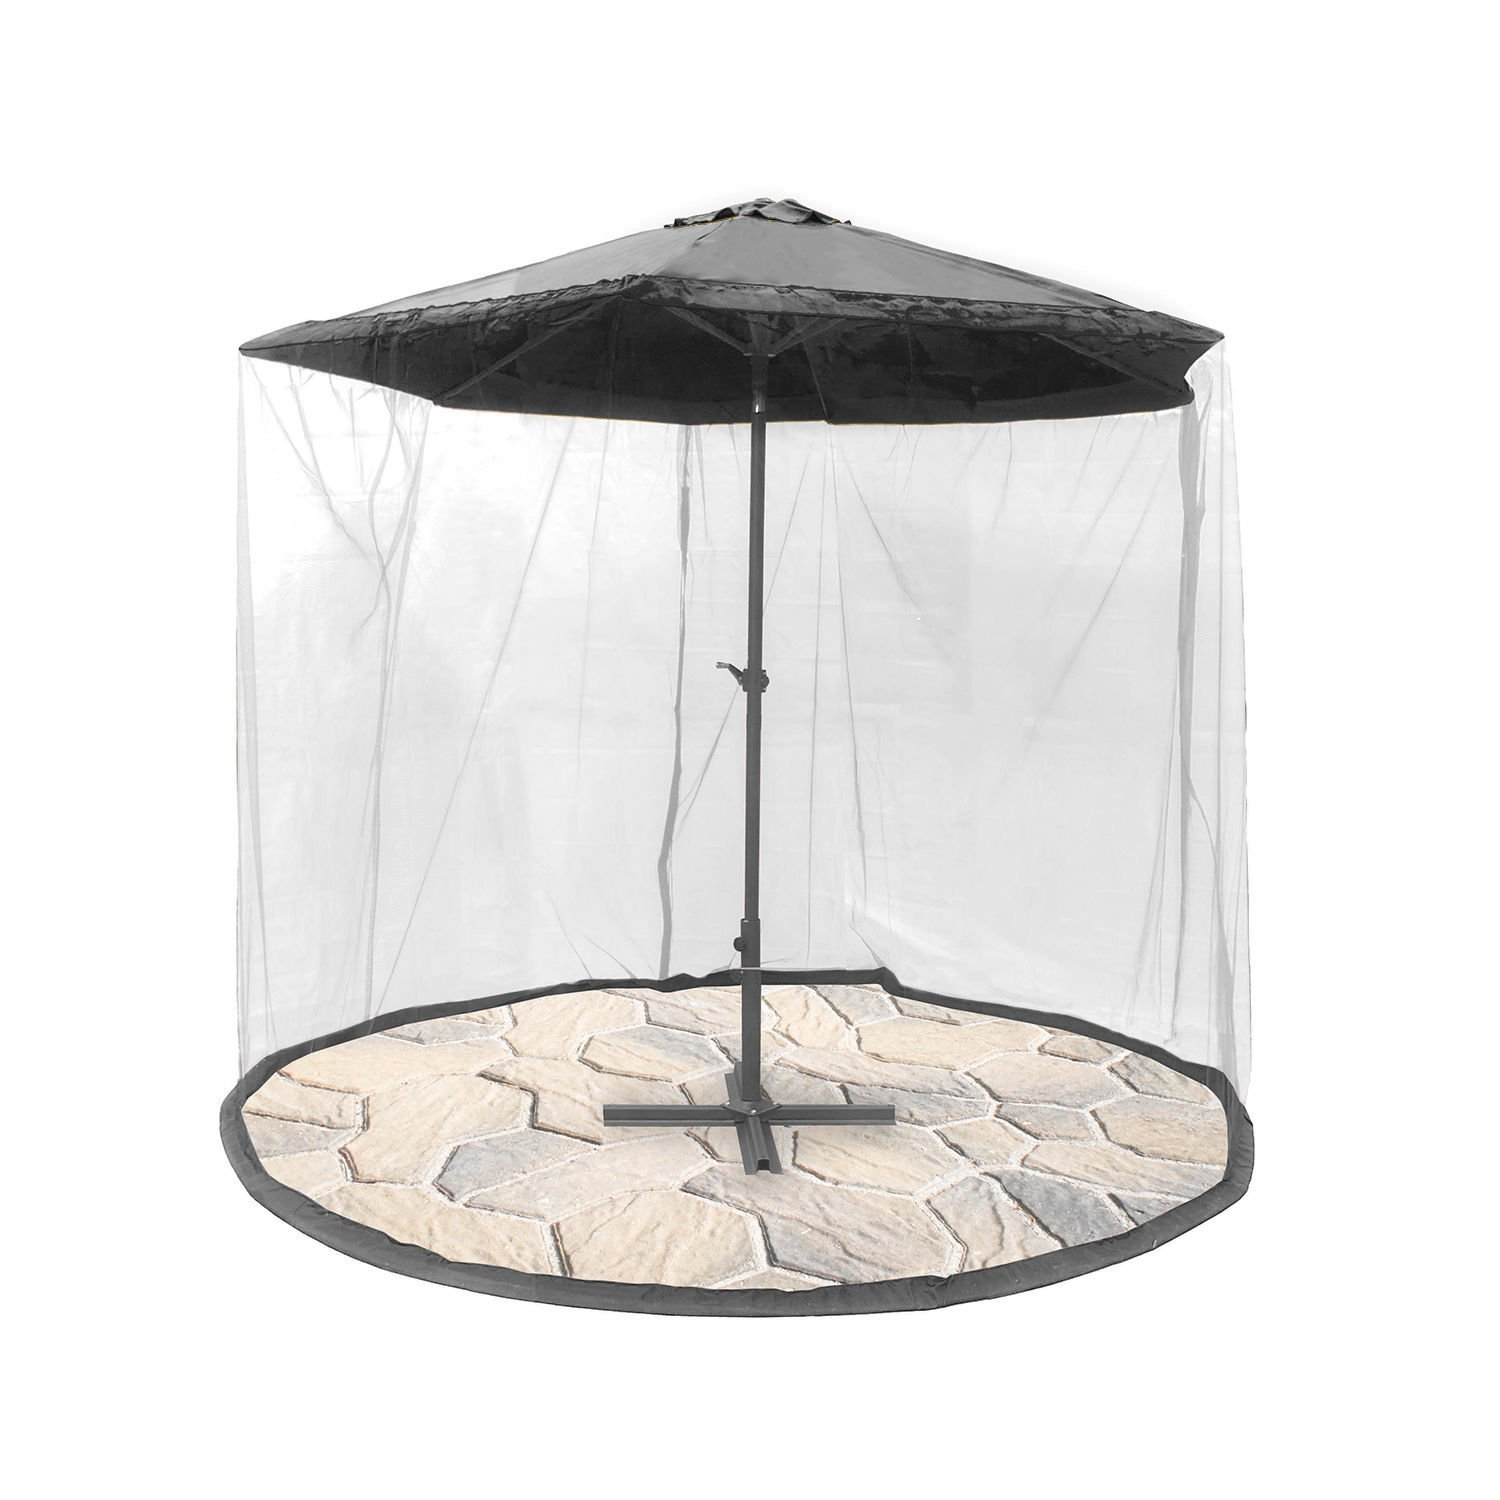 Gardensity ® Parasol Converter Cover Turn Your Parasol into a Gazebo! Easy Assembly Easy Fold Garden Outdoor Parasol side netting (Parasol converter ONLY)